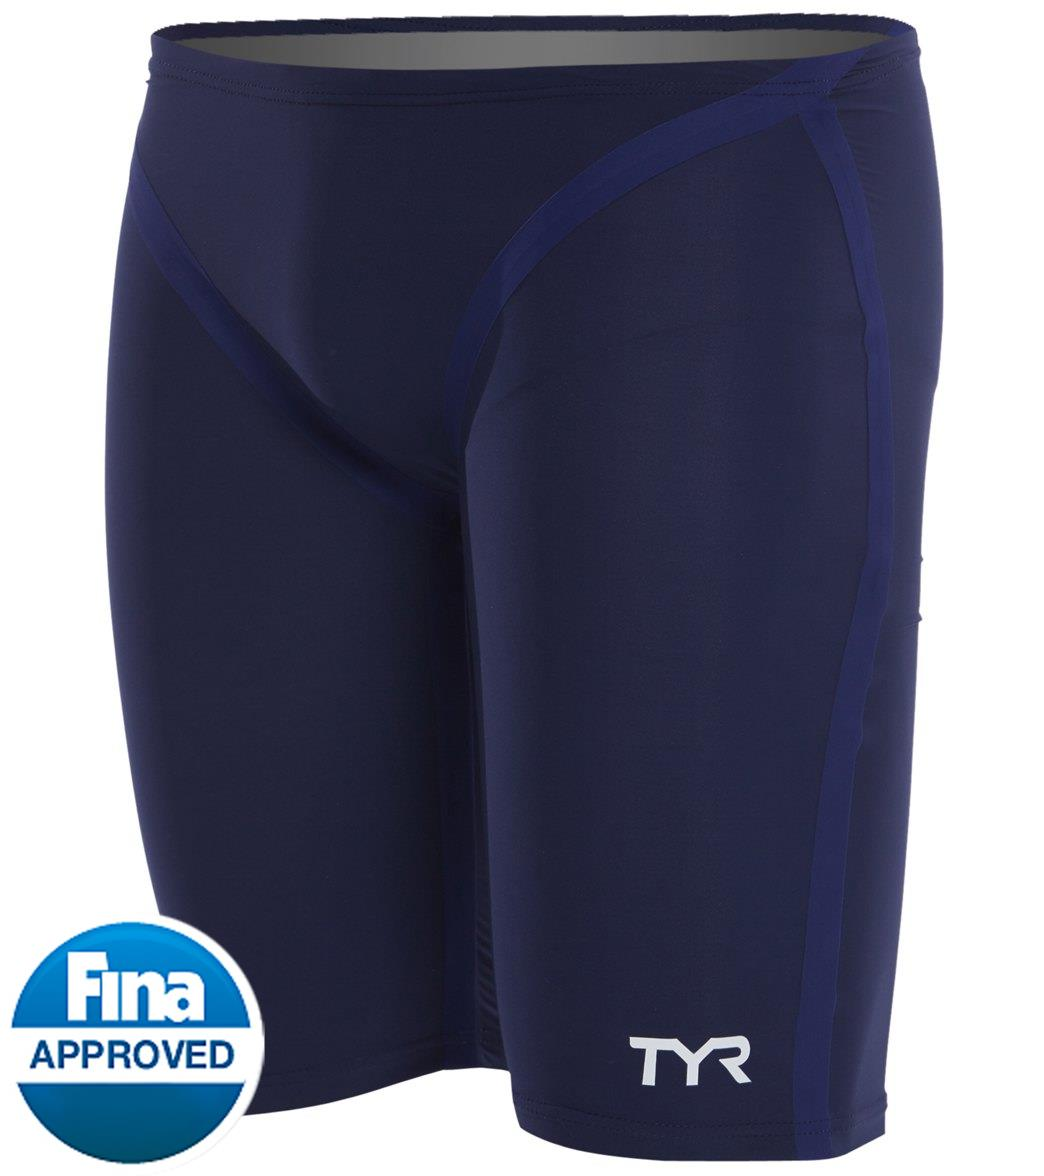 TYR Tracer B series buget tech suit men's